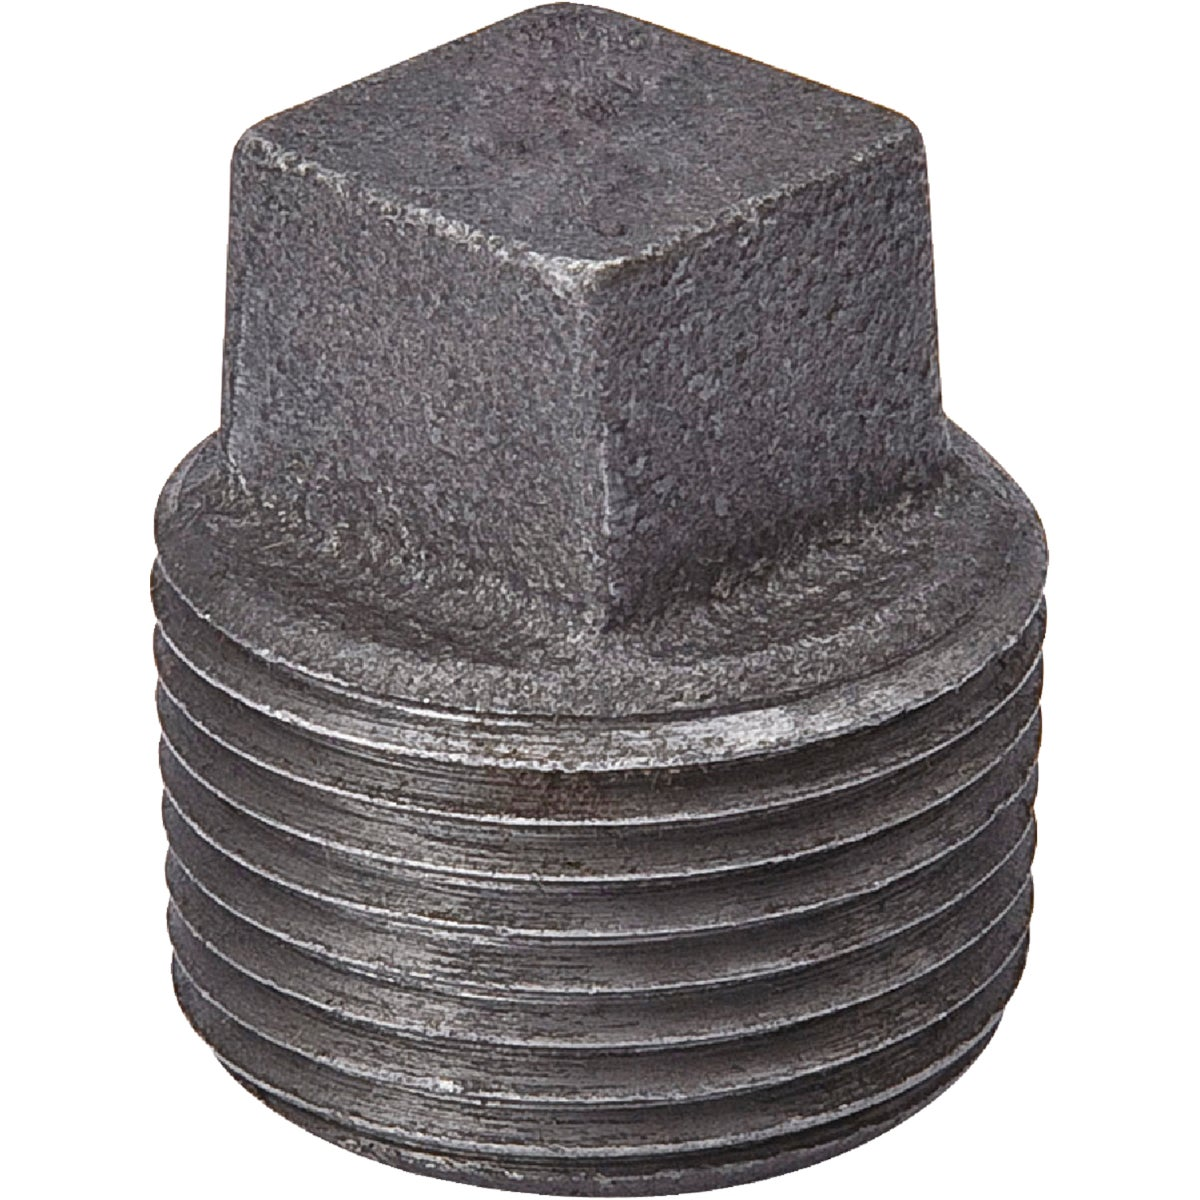 "3/4"" BLACK PLUG - 521-804BG by Mueller B K"